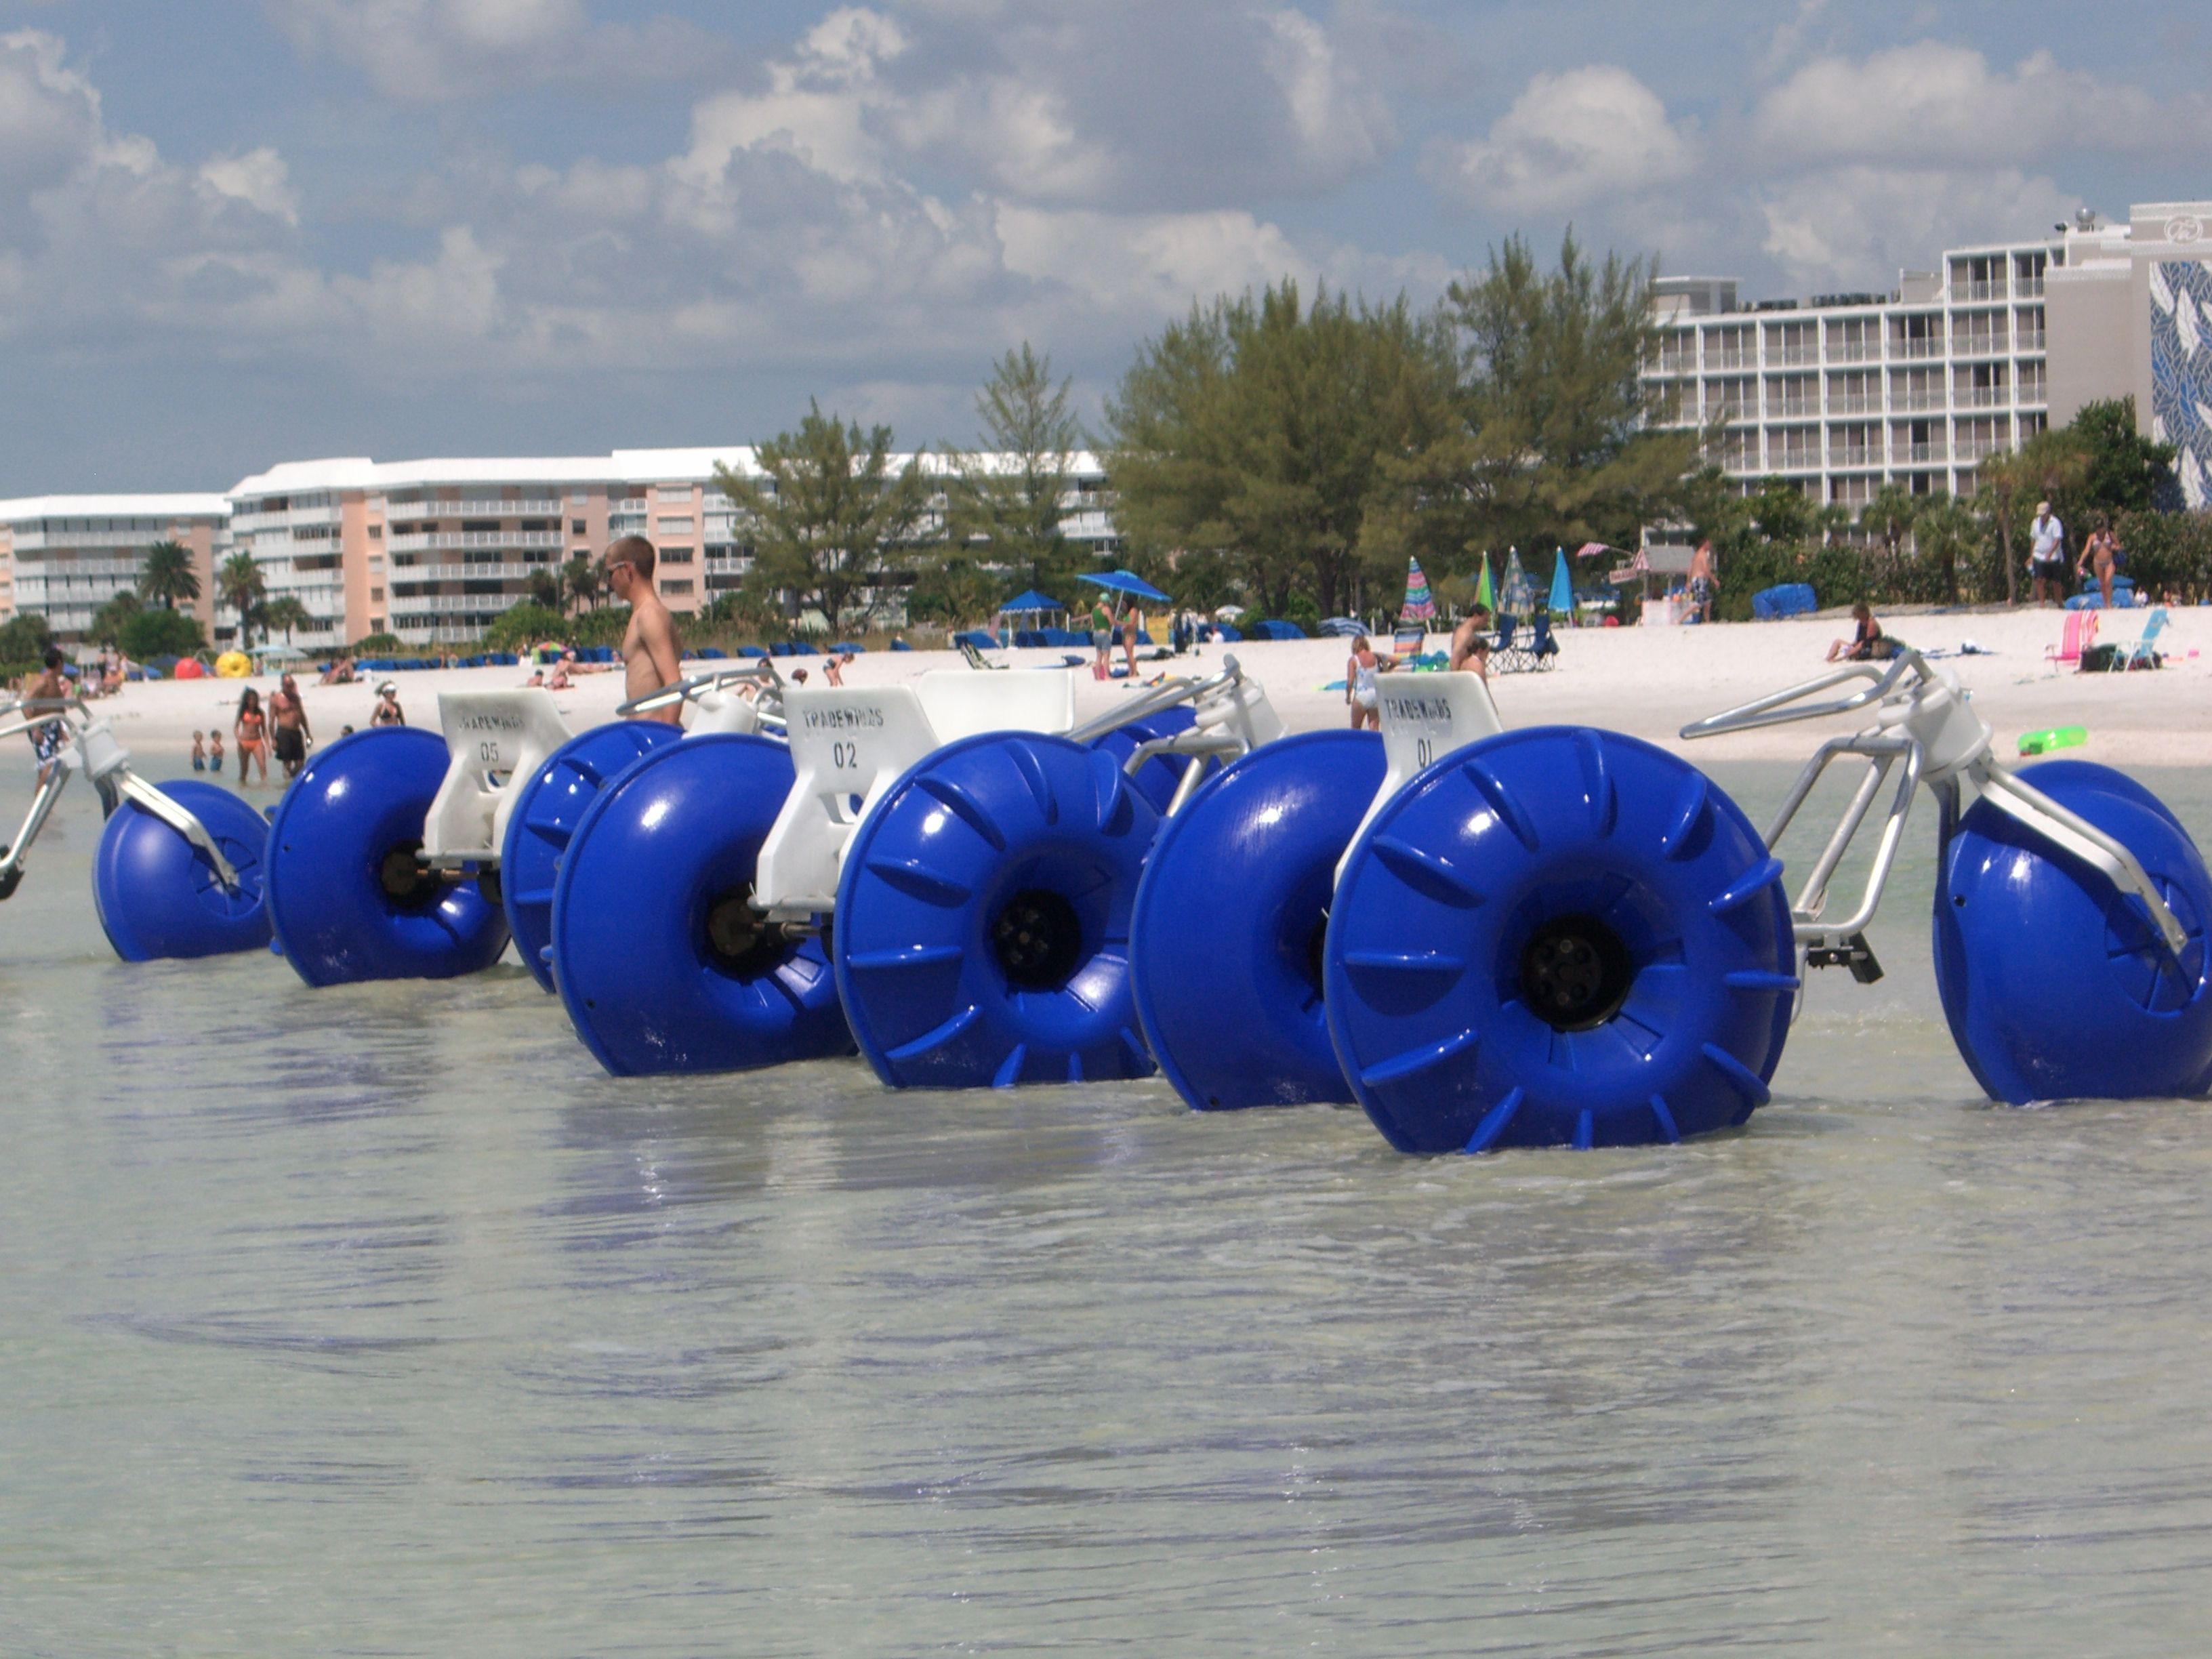 St. Pete Beach, Florida has been home to AquaCycle™ Water